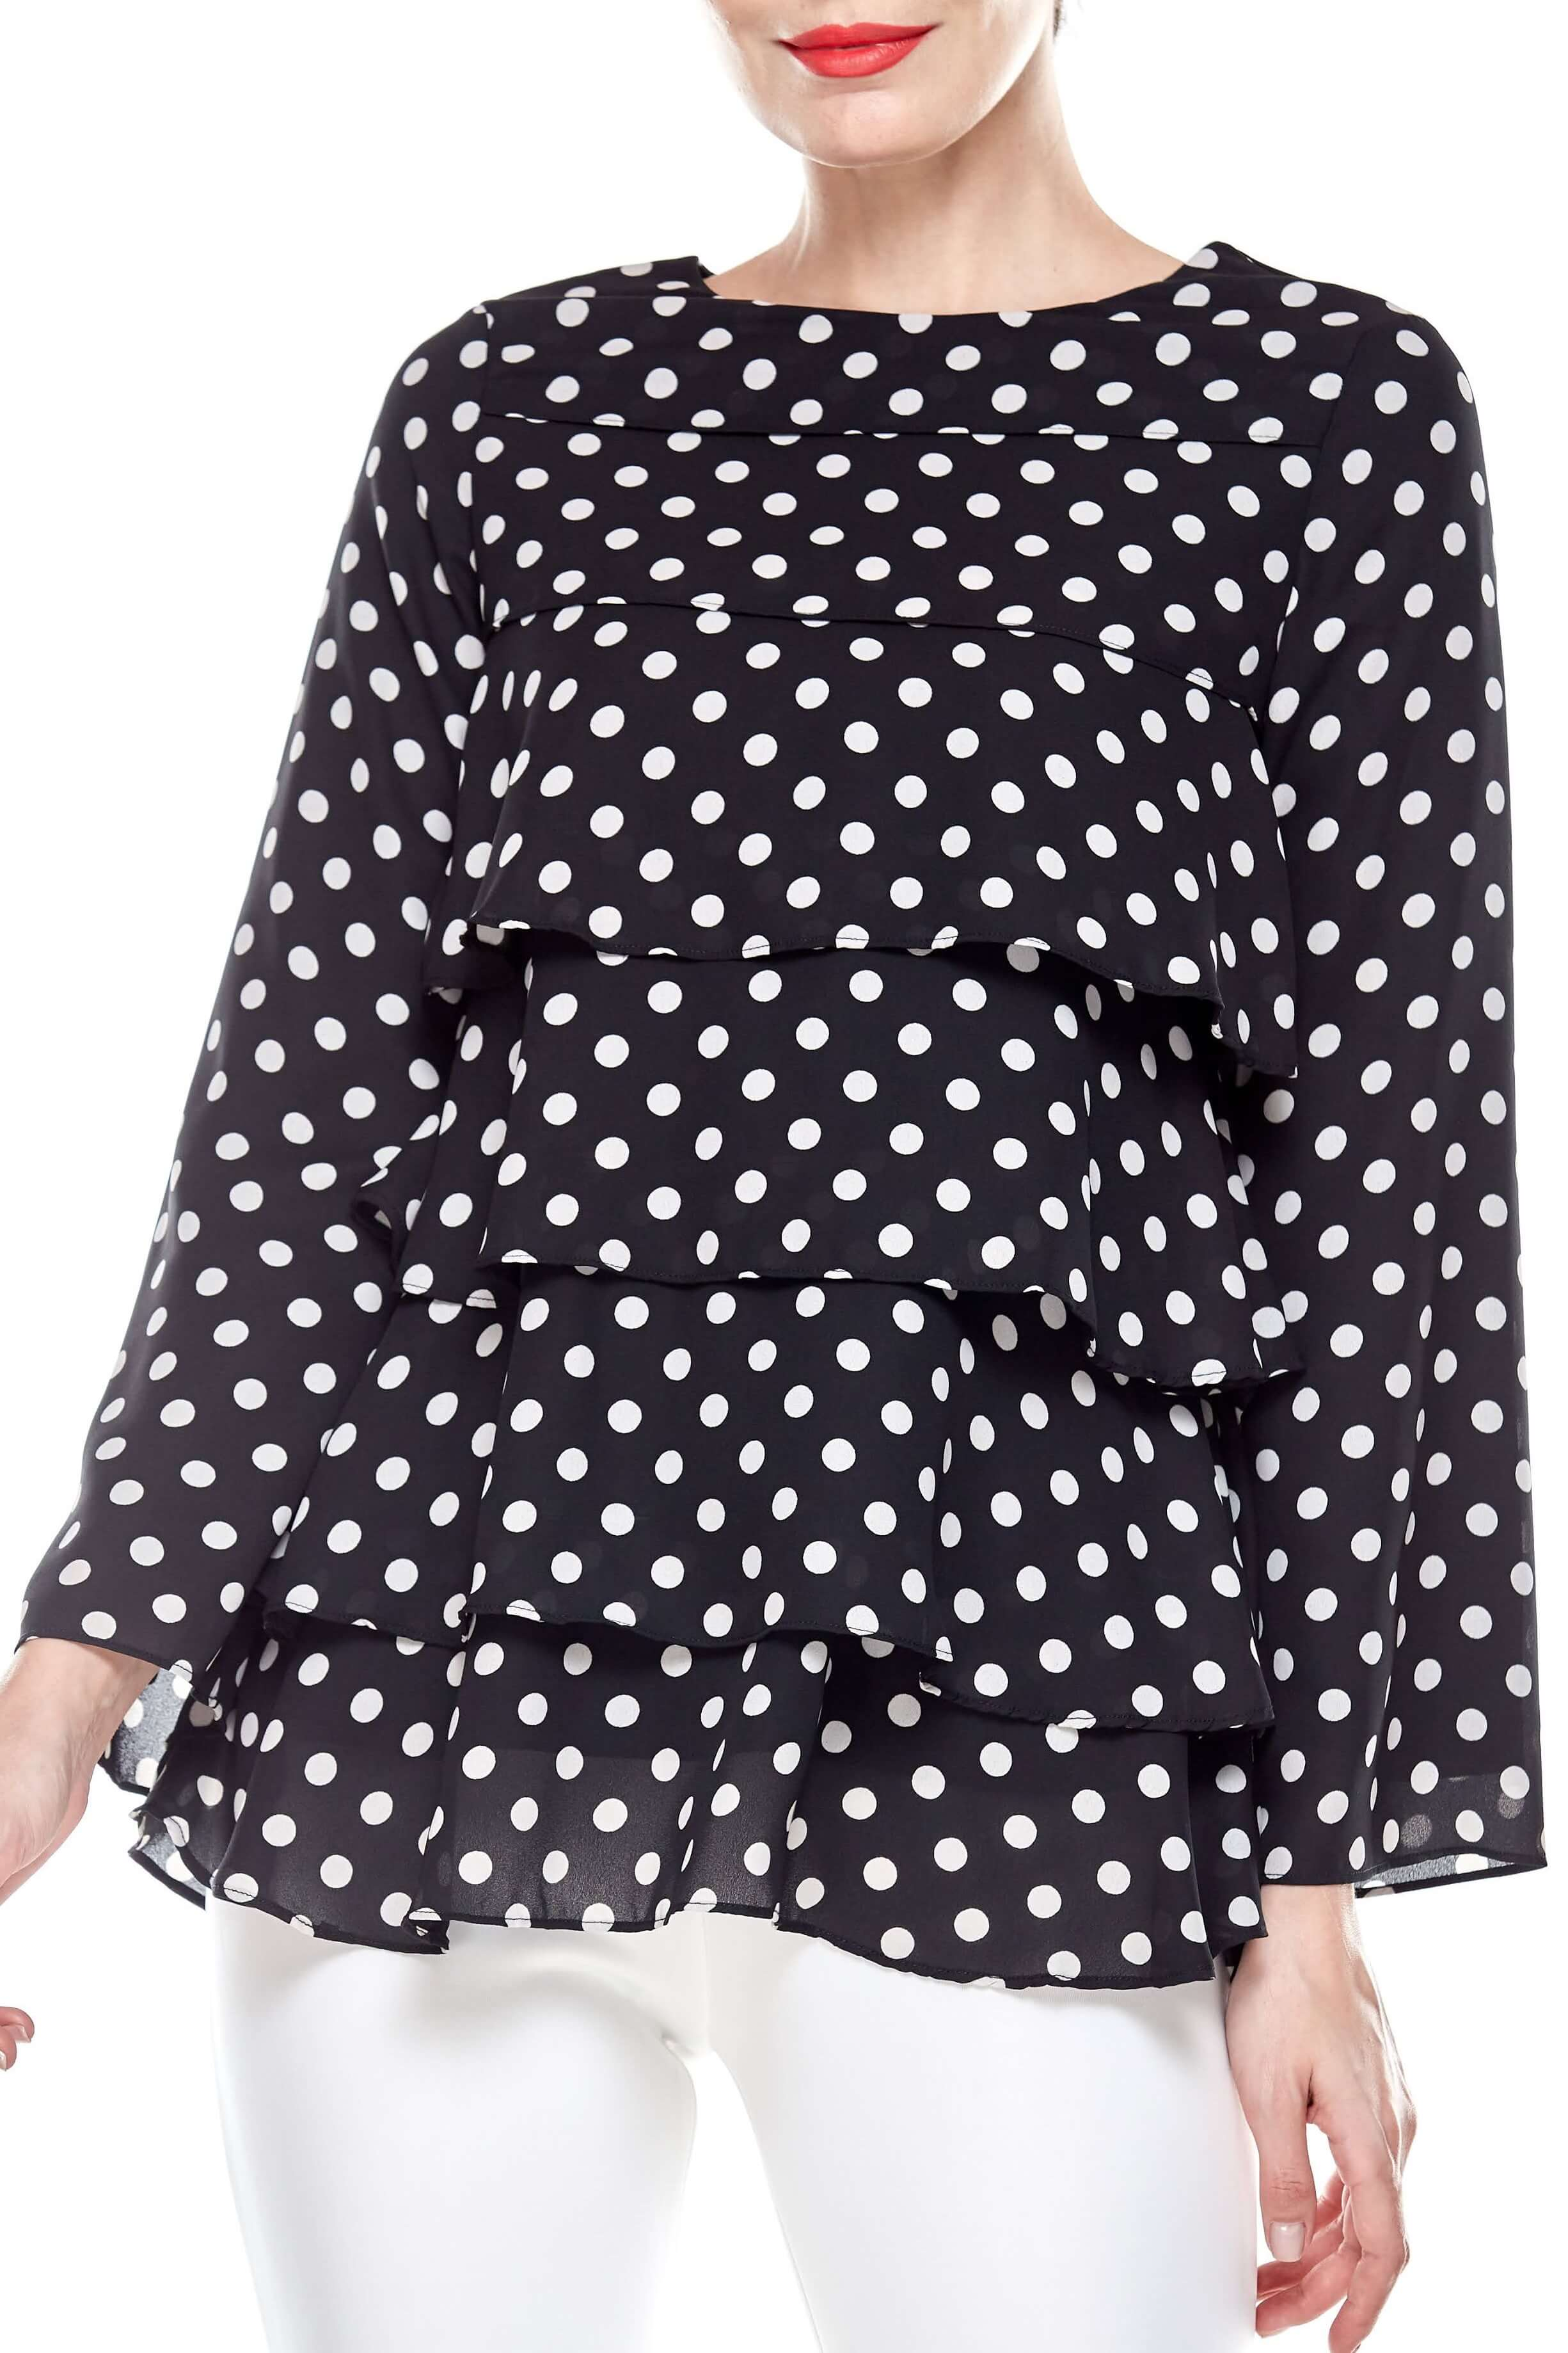 Black Tier Polka Dot Blouse (2)